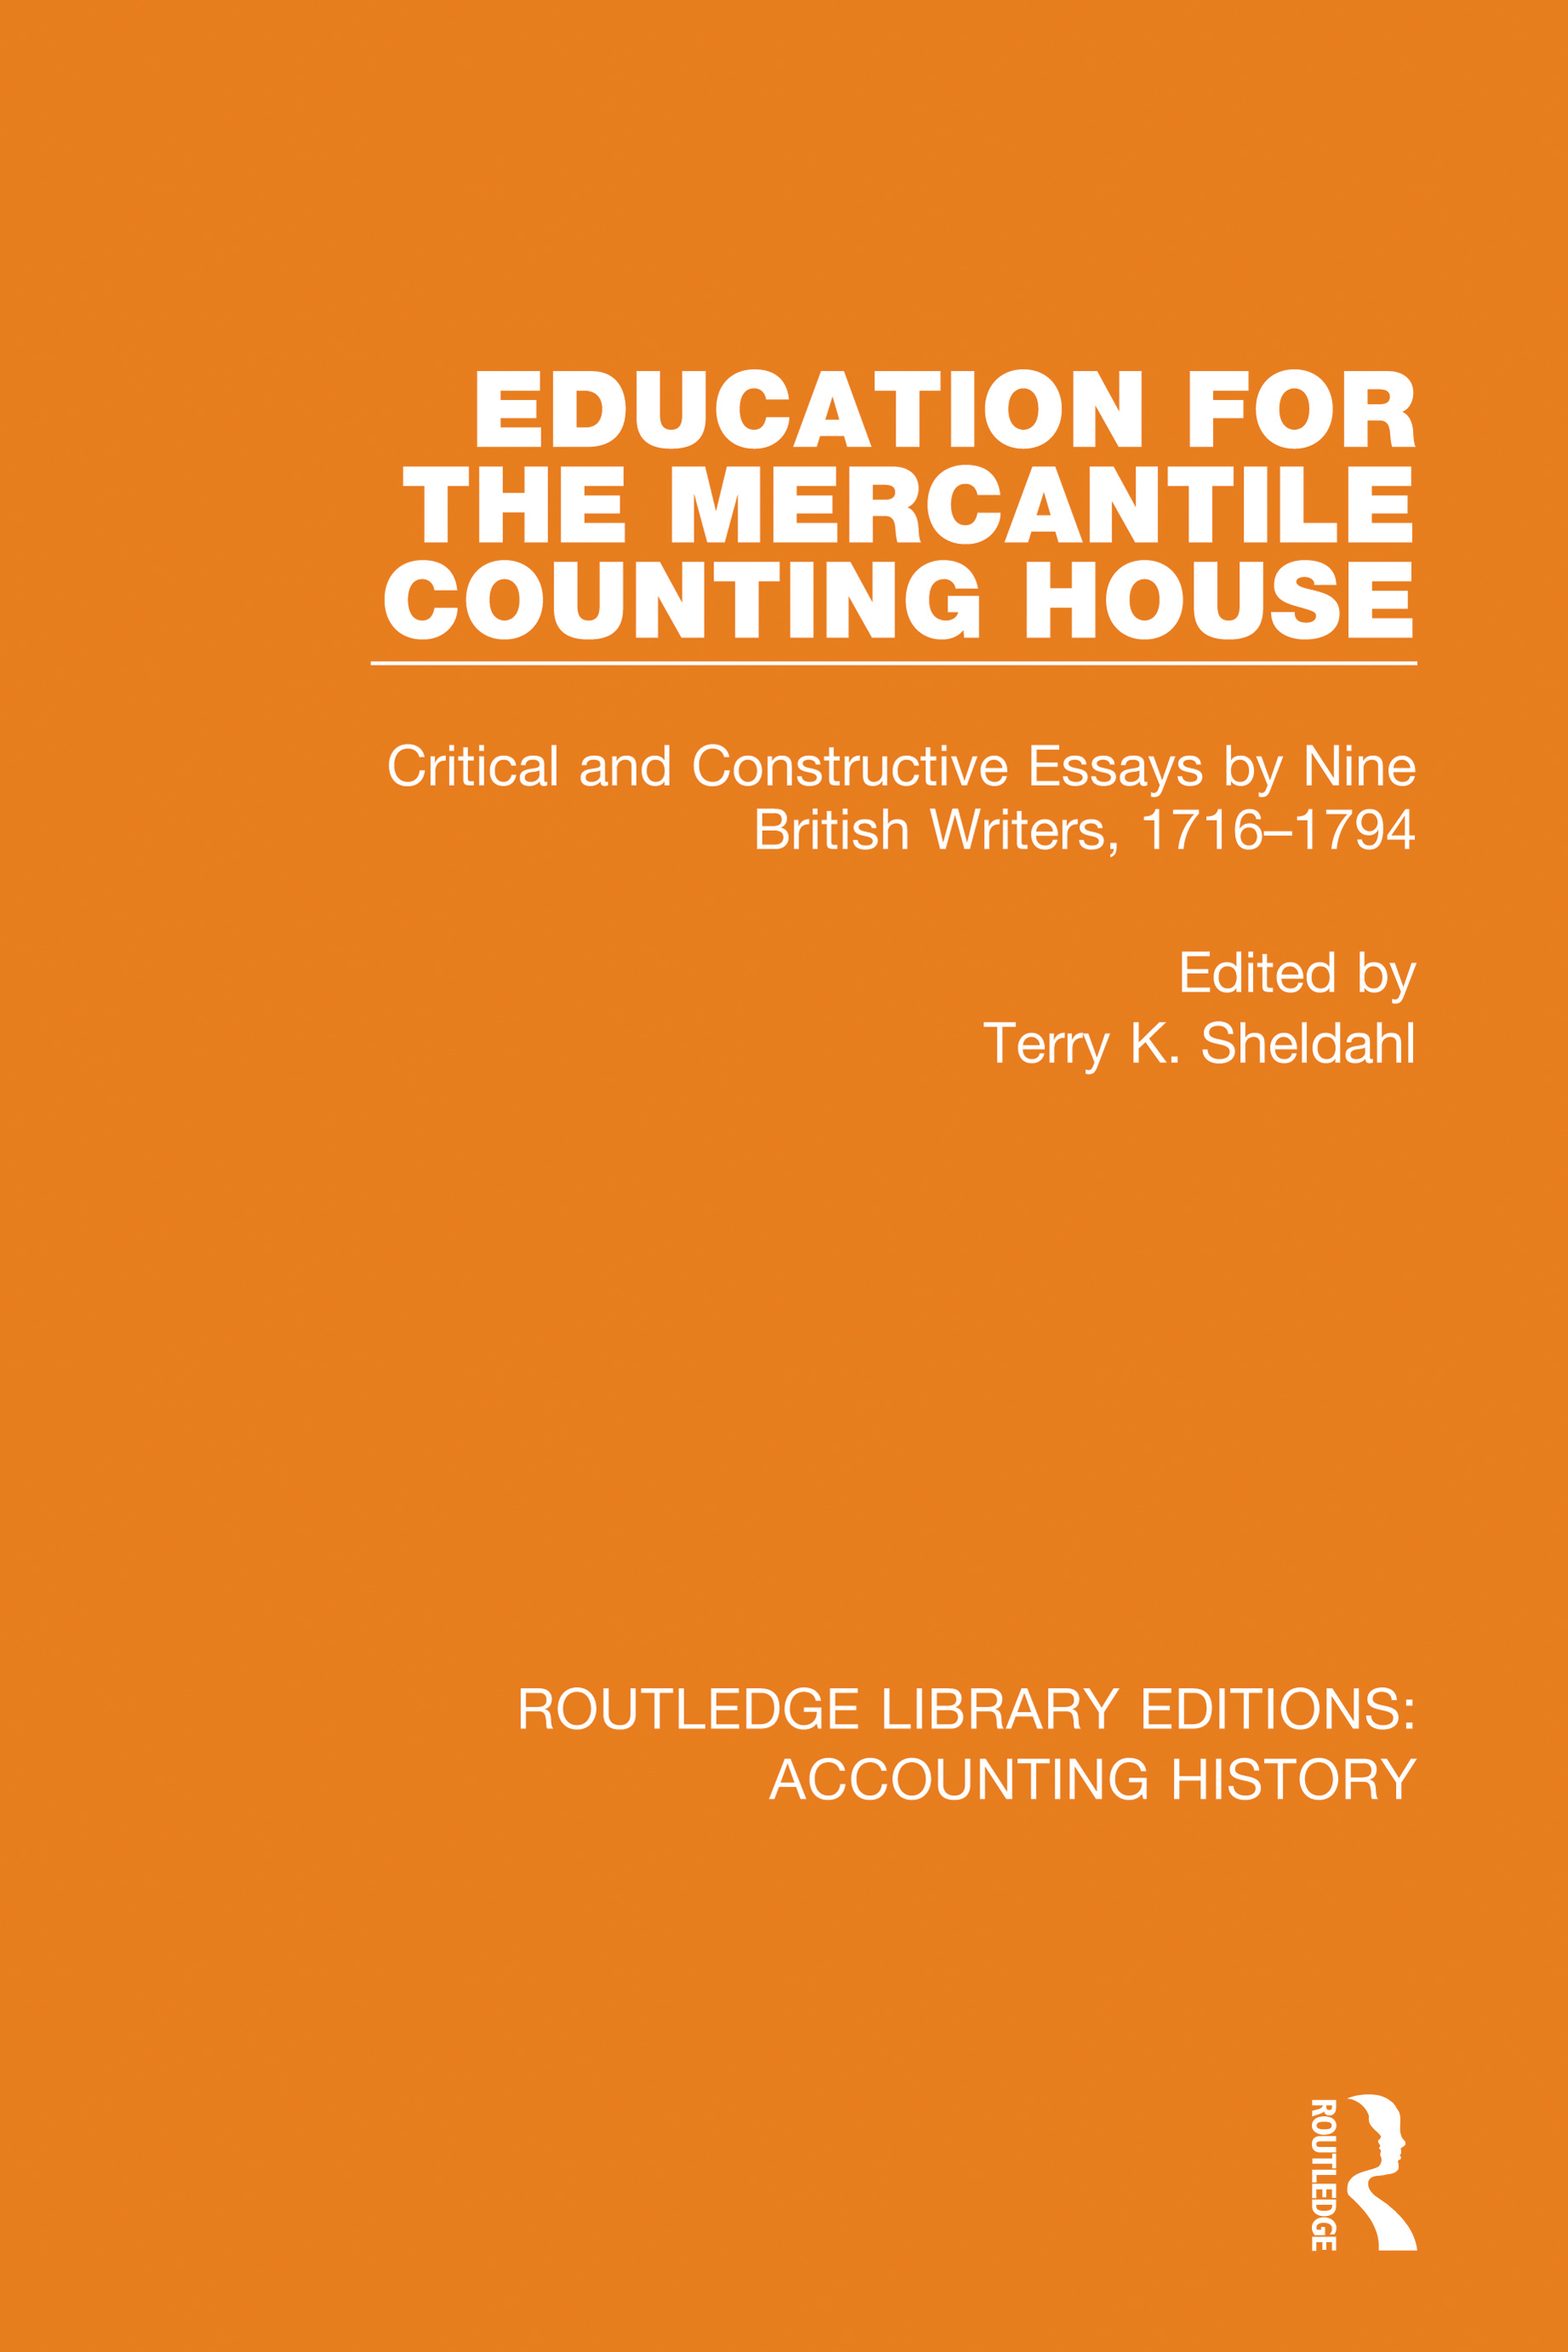 Education for the Mercantile Counting House